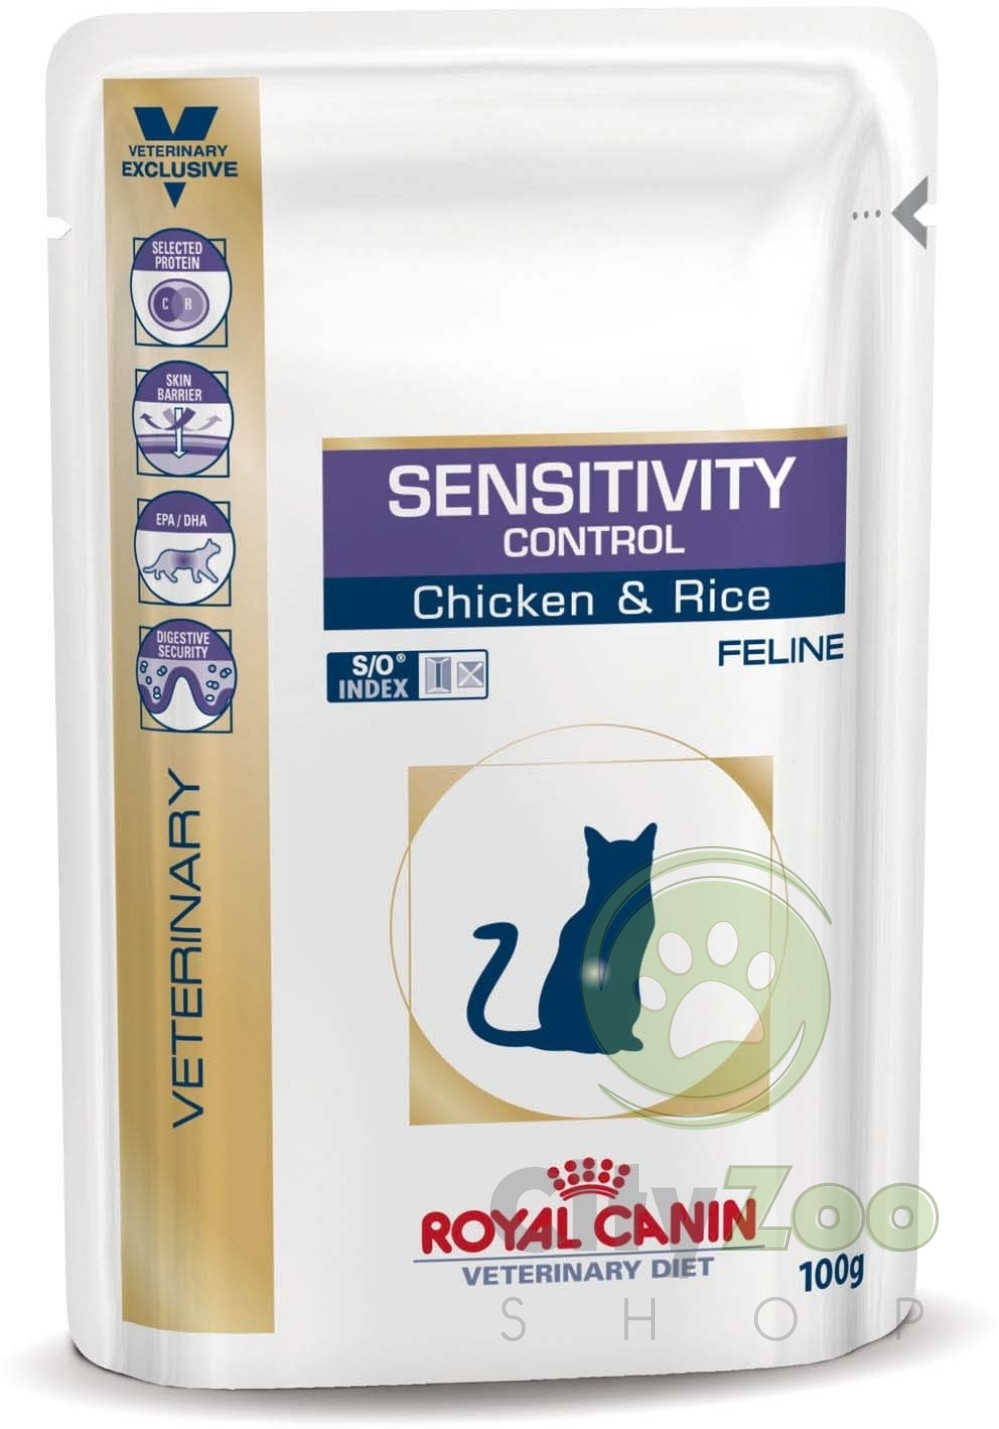 zoo/Royal_Canin_Sensitivity_Control_Feline_Pouches